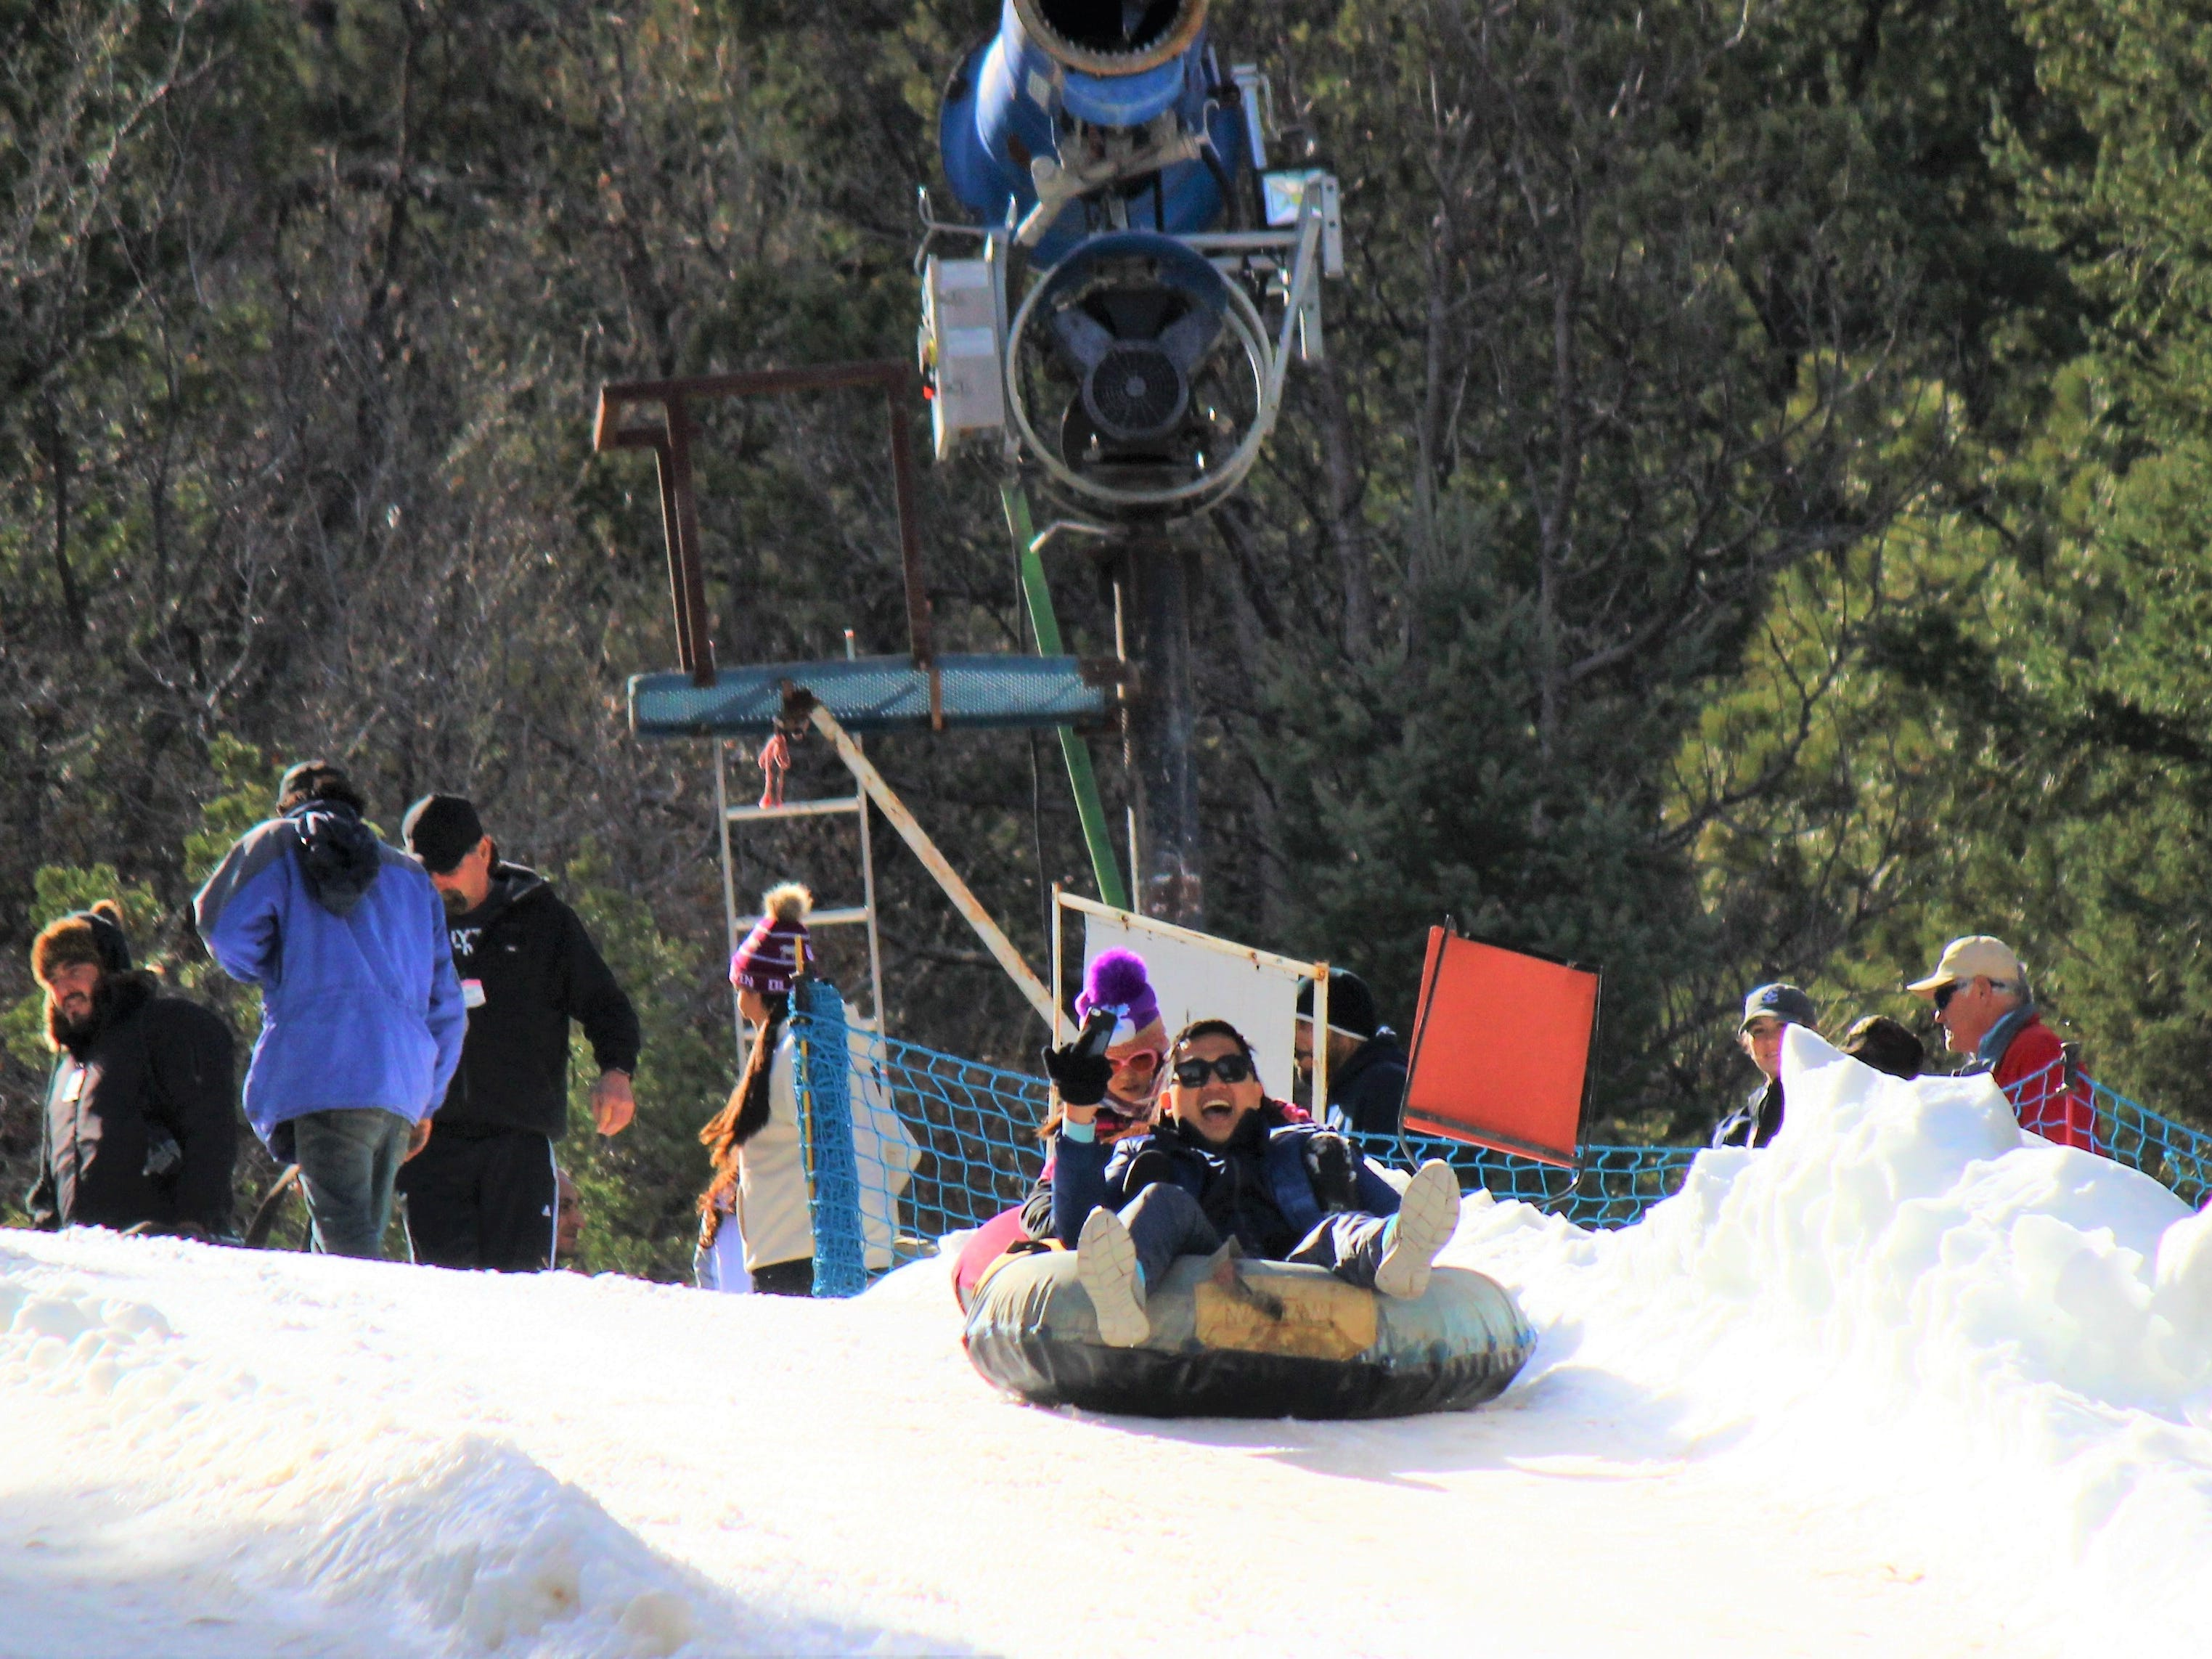 From the beginning to the end of a run, these adventure seekers at Ruidoso Winter Park are enjoying their tubing ride downhill.